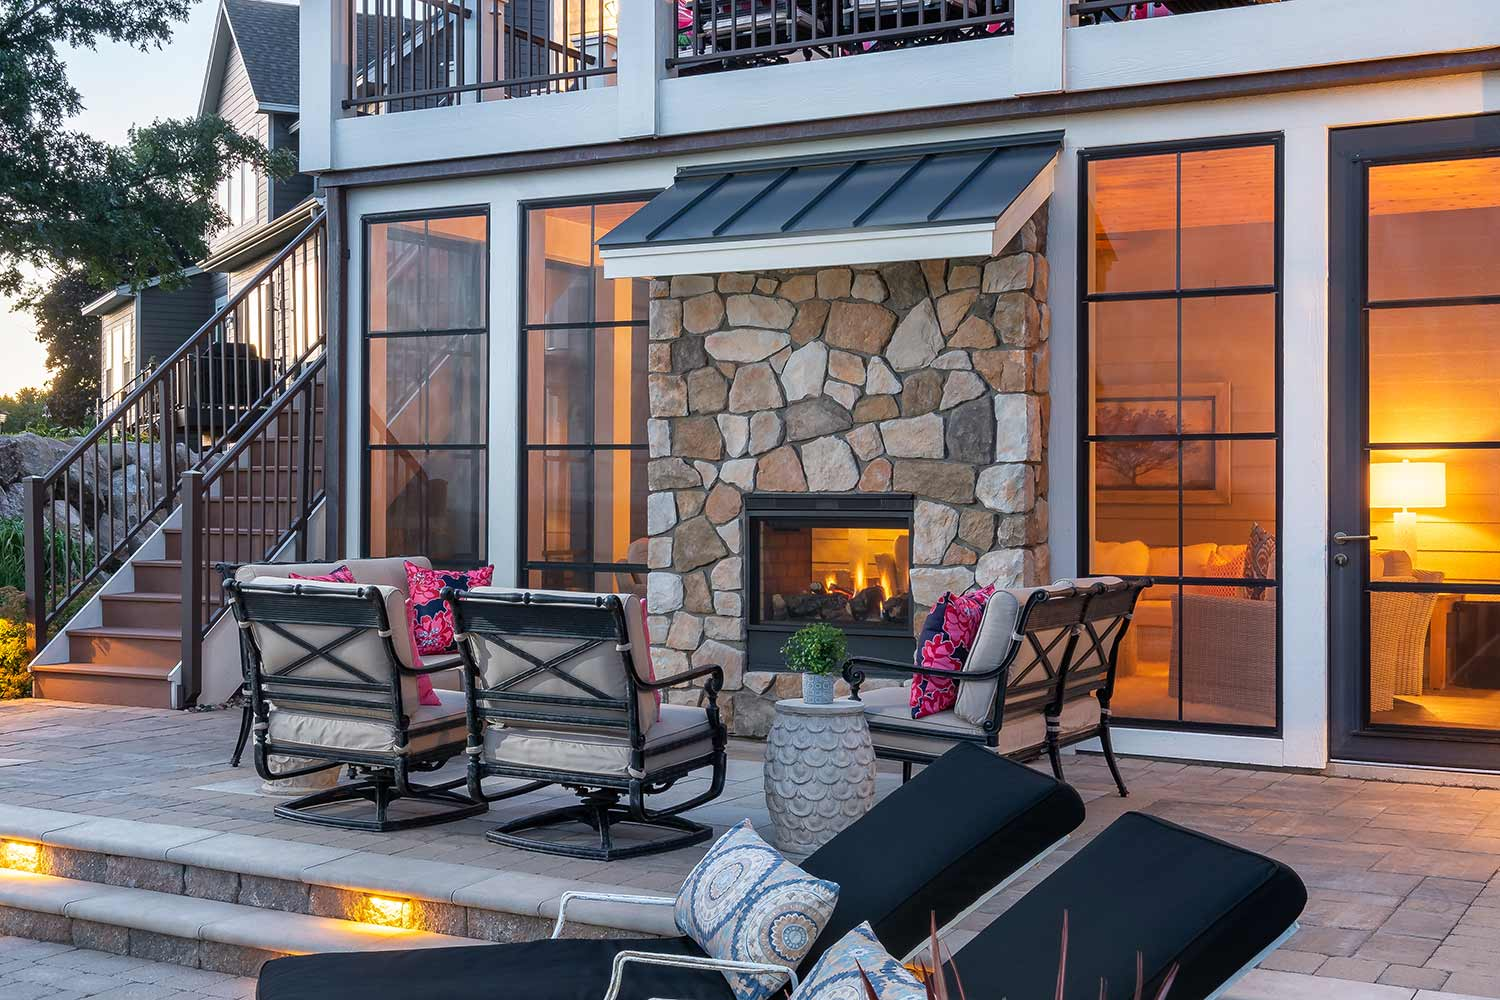 Gas fireplace connects indoors and outdoors